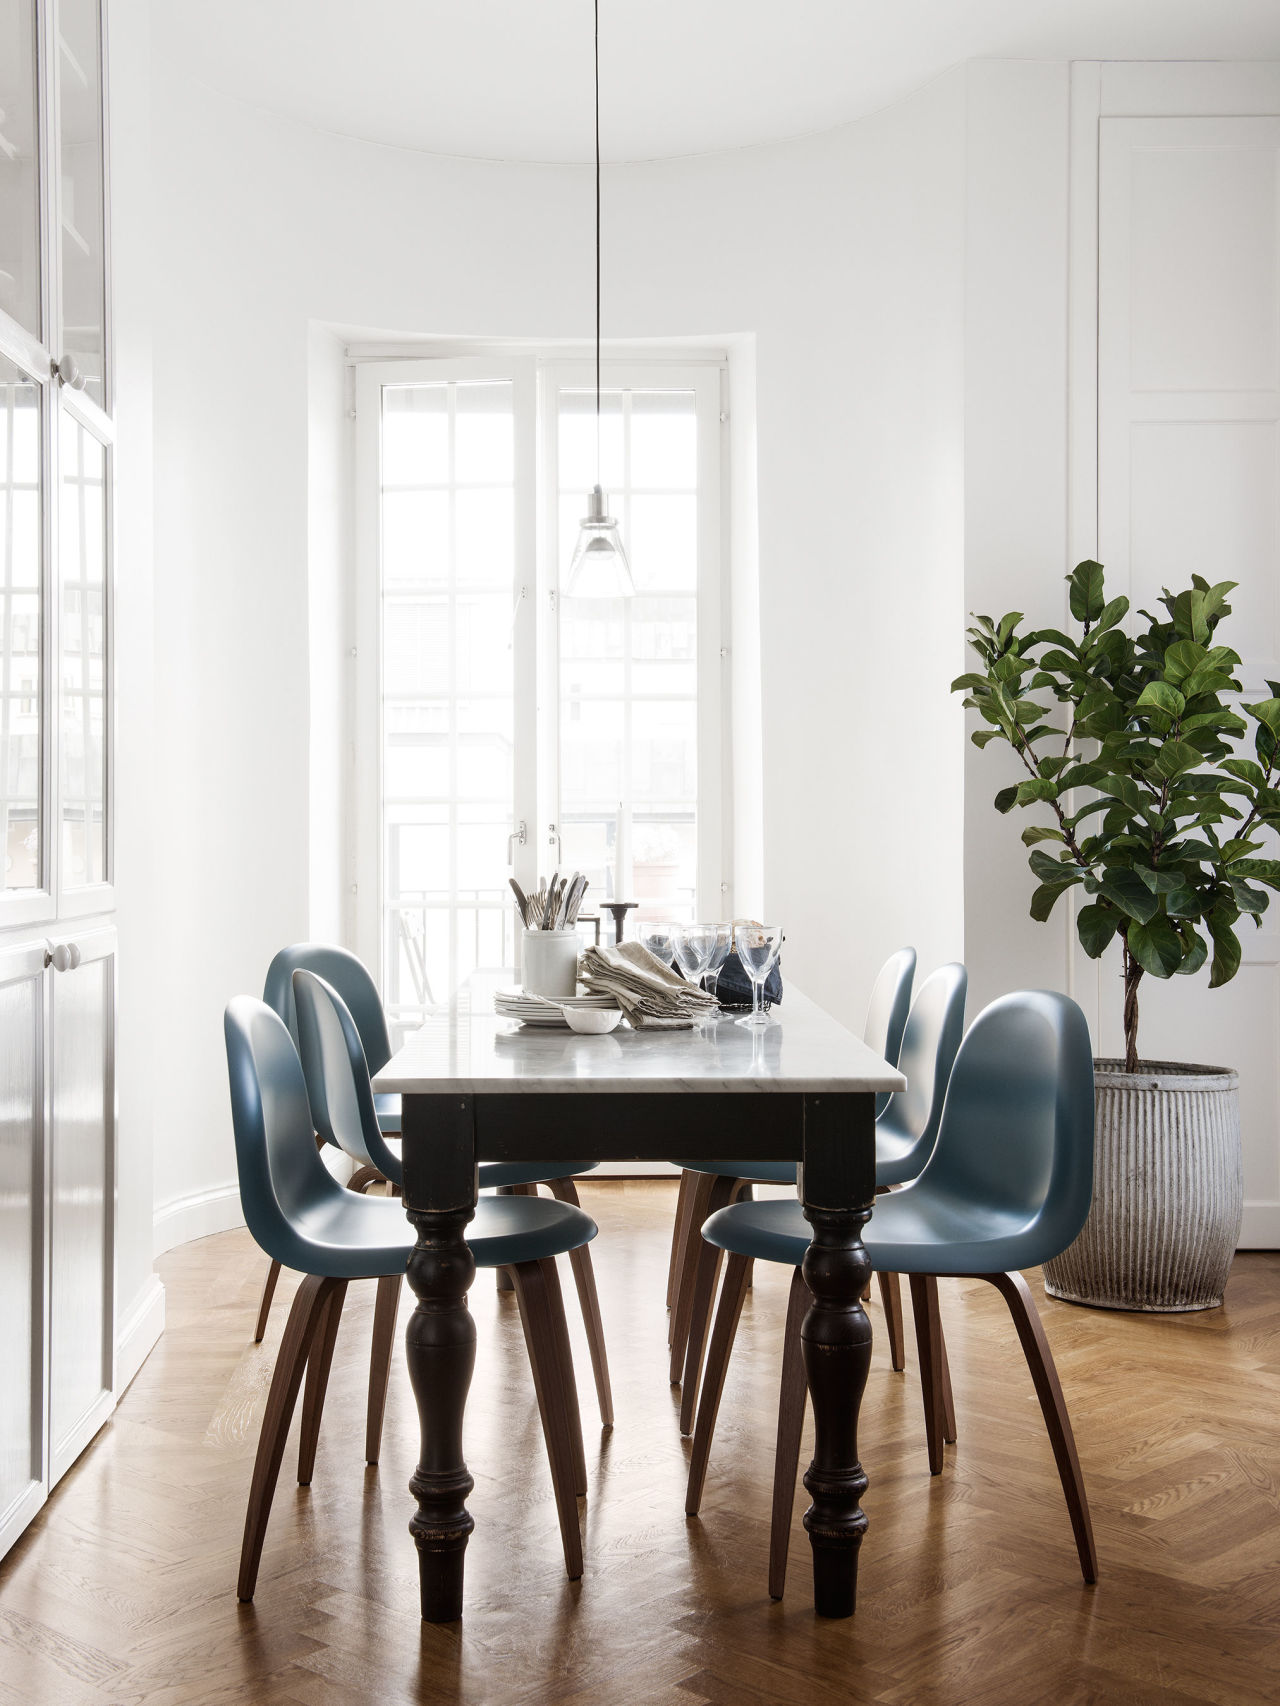 Home of H&M\'s head of design - COCO LAPINE DESIGNCOCO LAPINE DESIGN